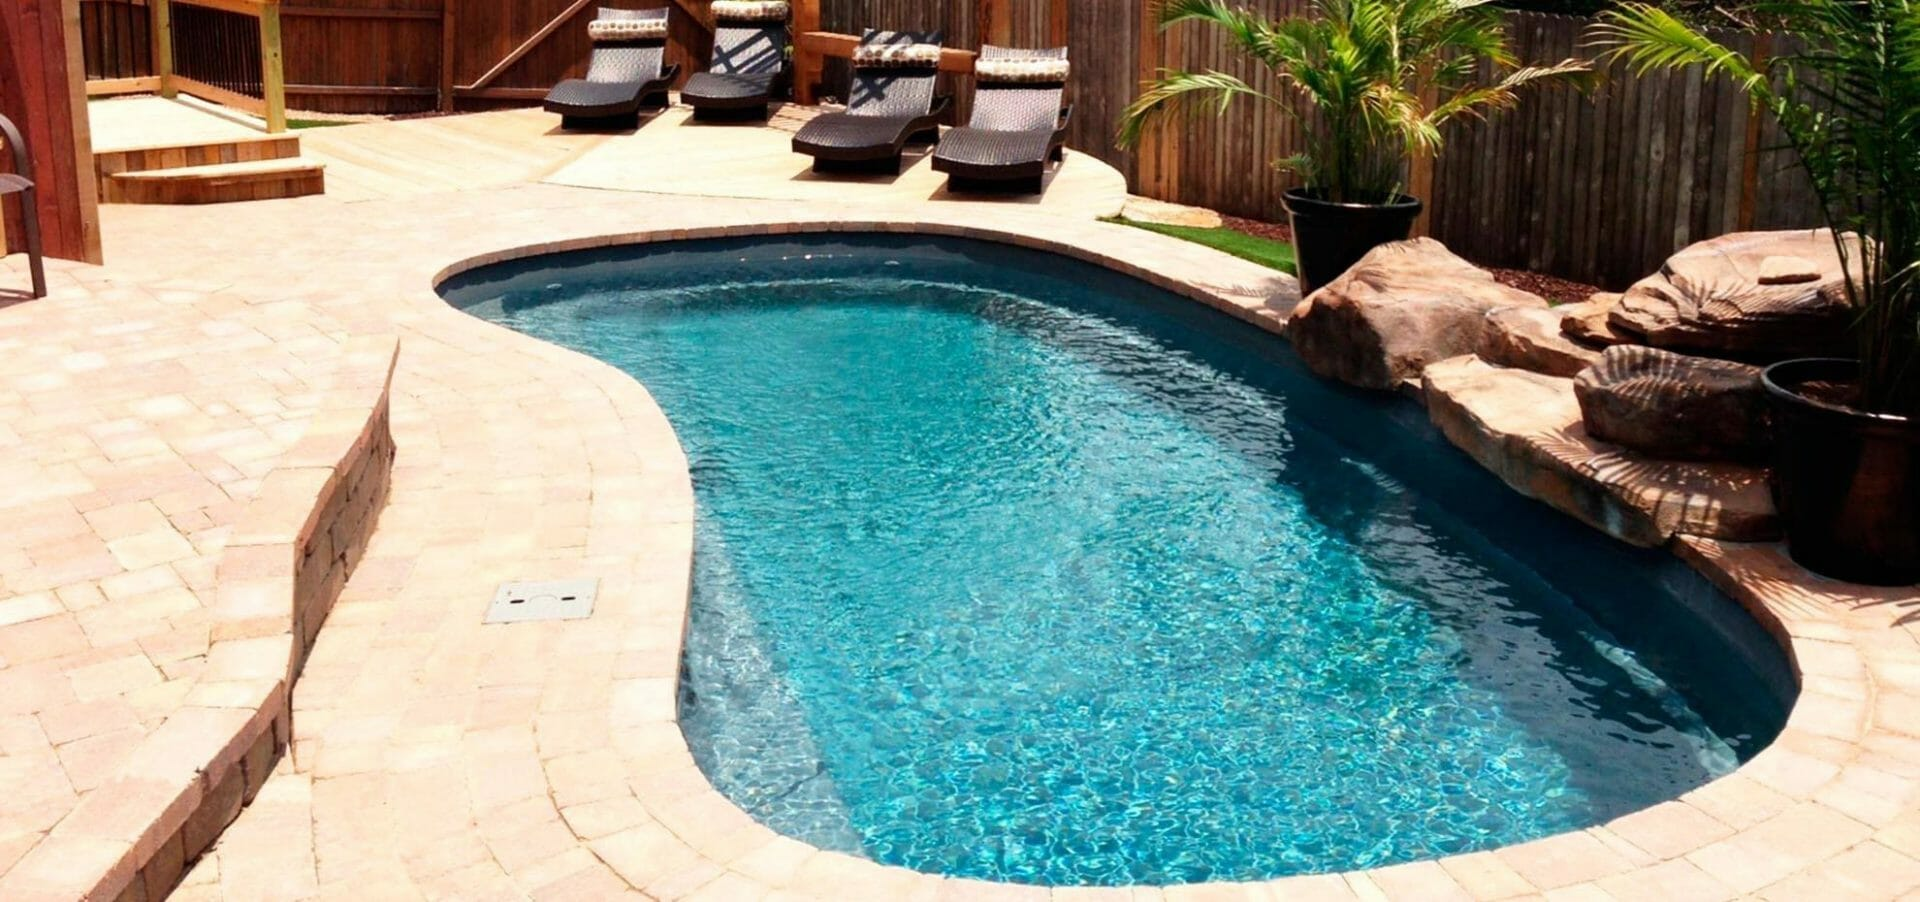 Tuscany Fibreglass Pool with armor stone and coping by Leisure Pools